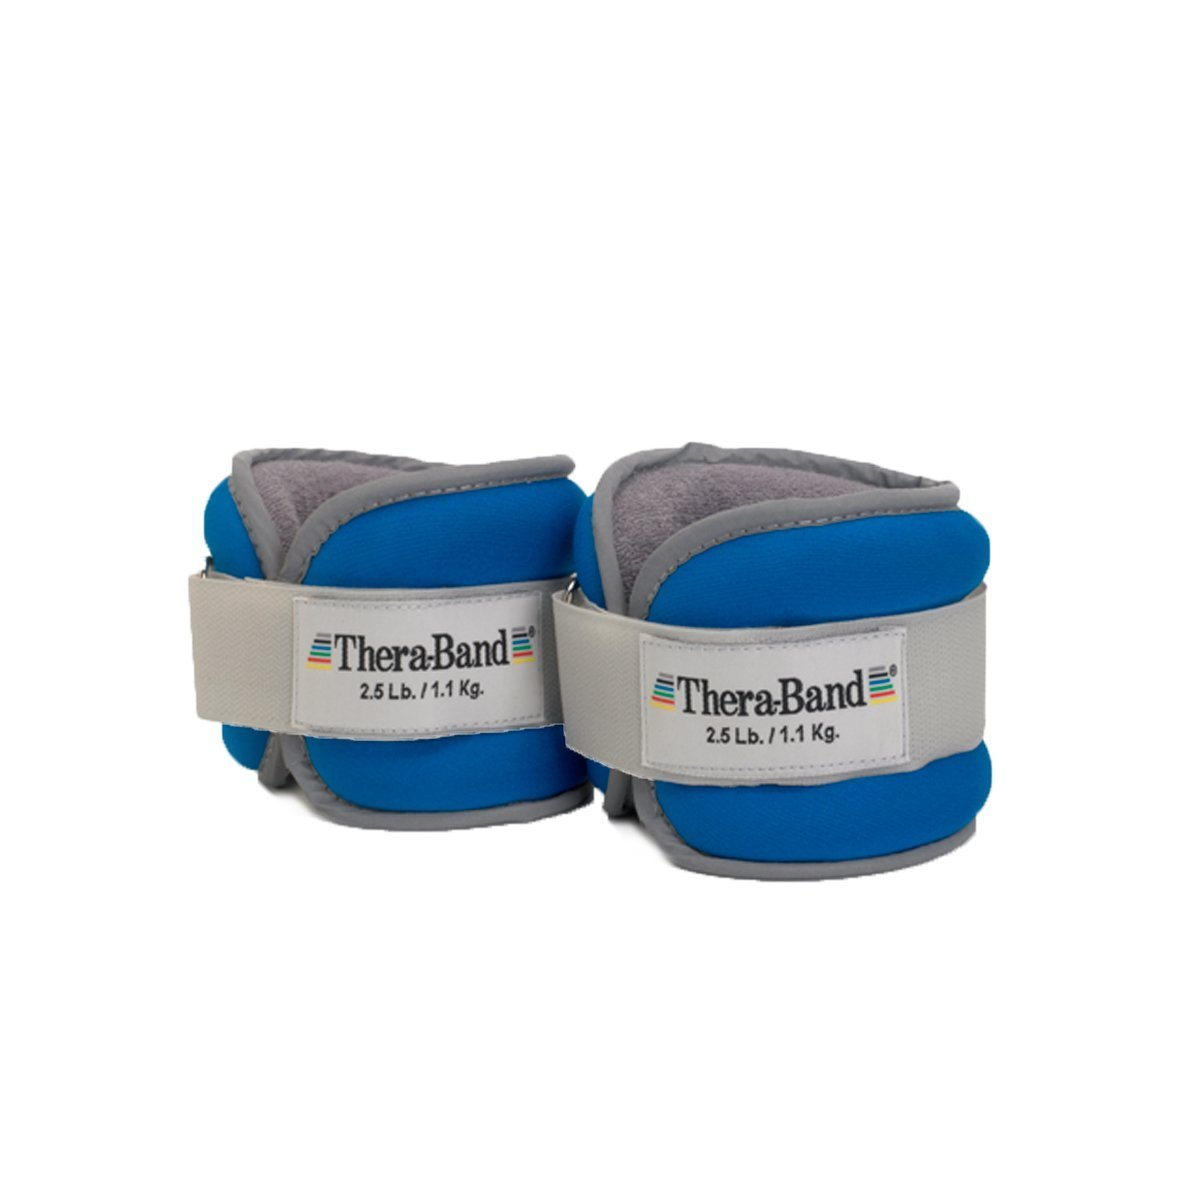 TheraBand Ankle Weights, Comfort Fit Wrist Ankle Cuff Weight Set, Adjustable Walking Weights for Cardio, Home Workout, Ankle Strengthening Physical Therapy, Blue, 2.5 lb. Each, Set of 2, 5 Pounds